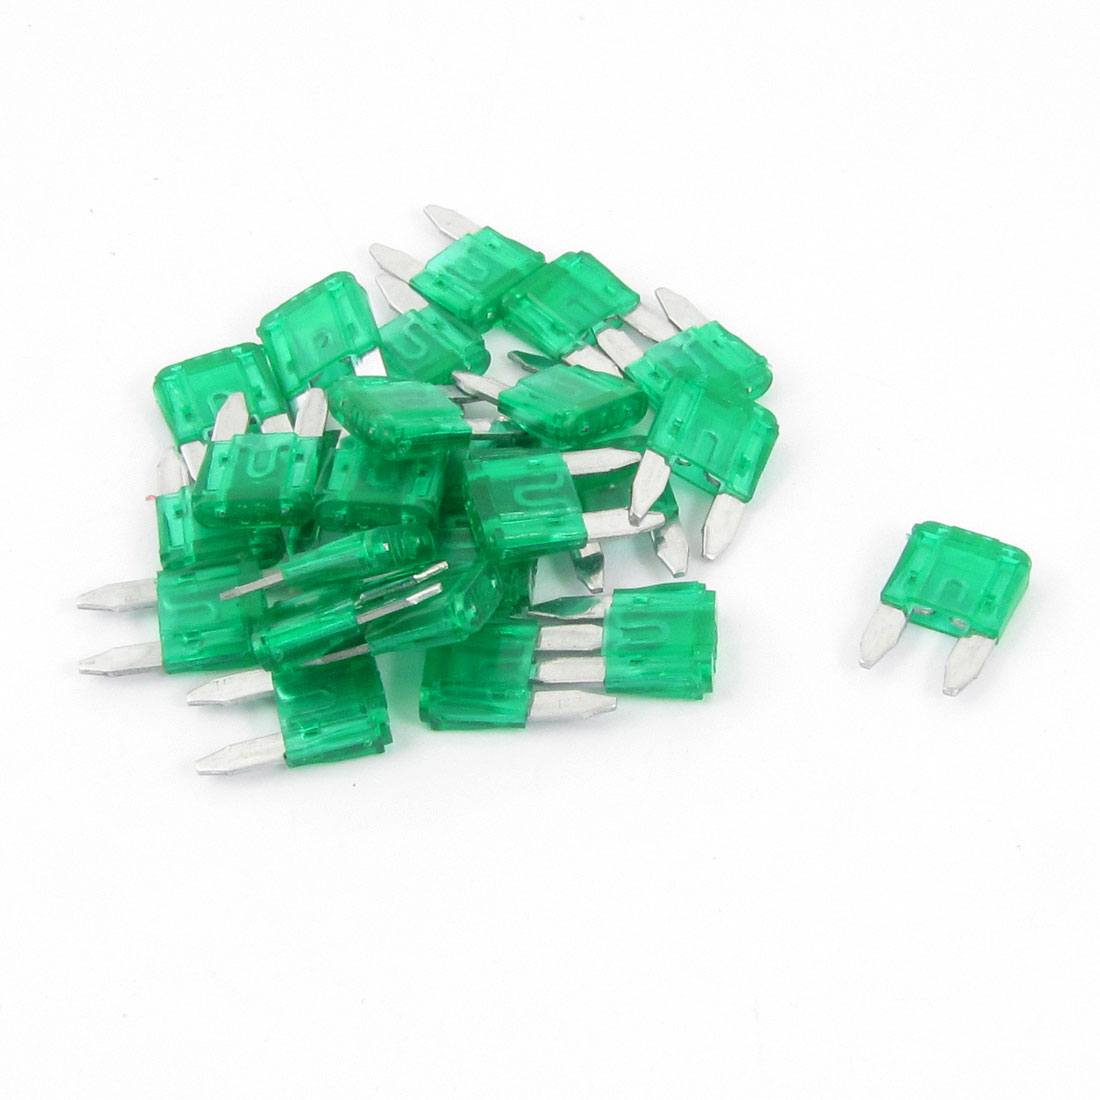 Automotive Car Mini Blade Fuse 30A Green Auto Fuses 25 Pcs